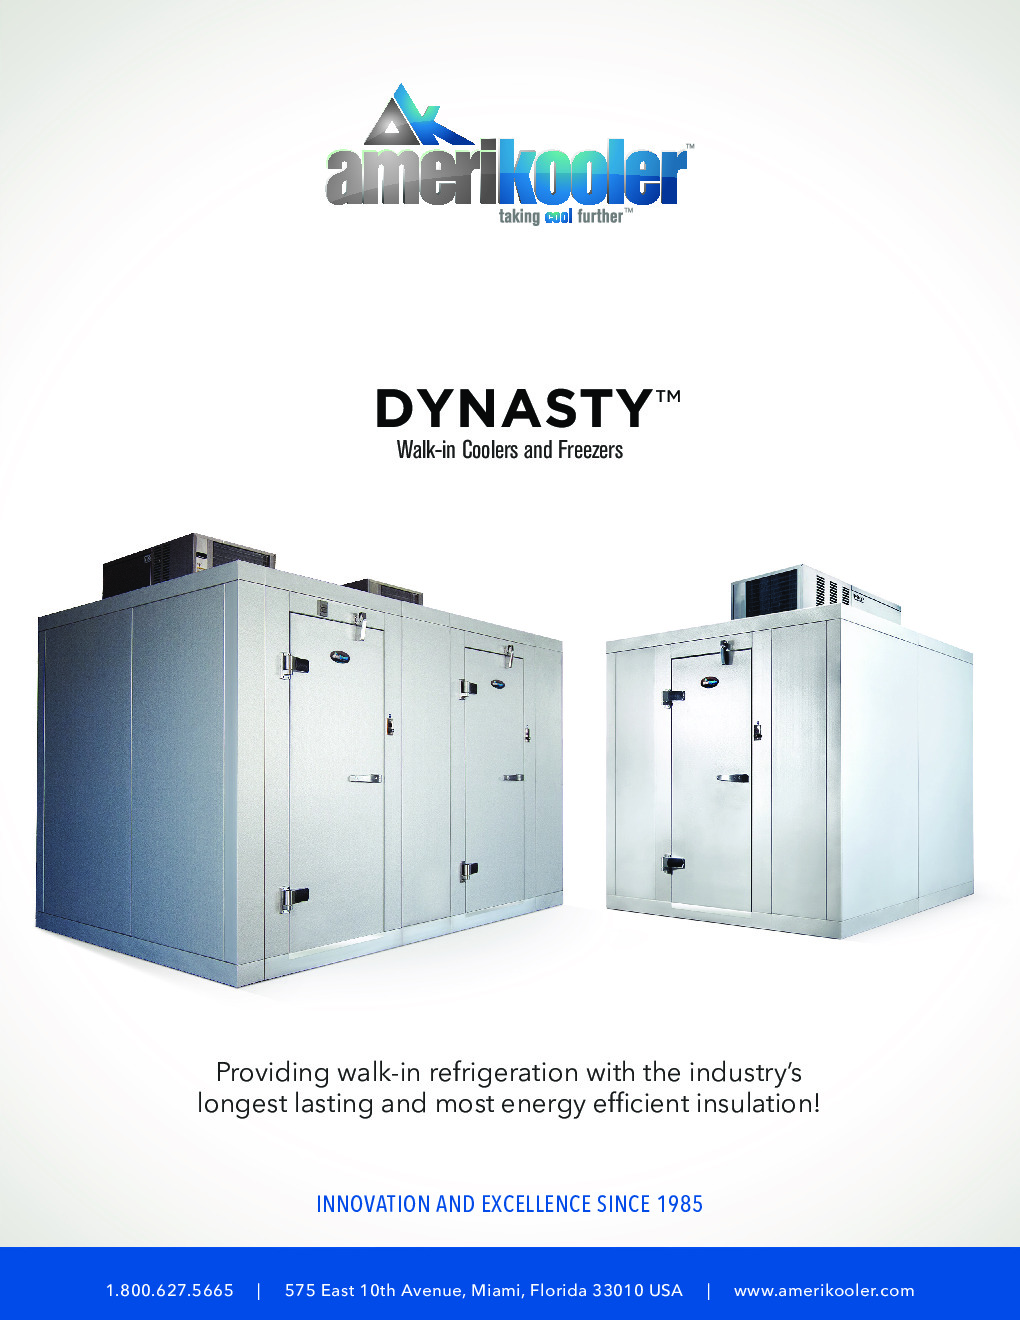 AmeriKooler DW101277N-4/8-RM 10' X 12' Walk-In Cooler, 8' L Cooler without Floor and 4' L Freezer, Remote